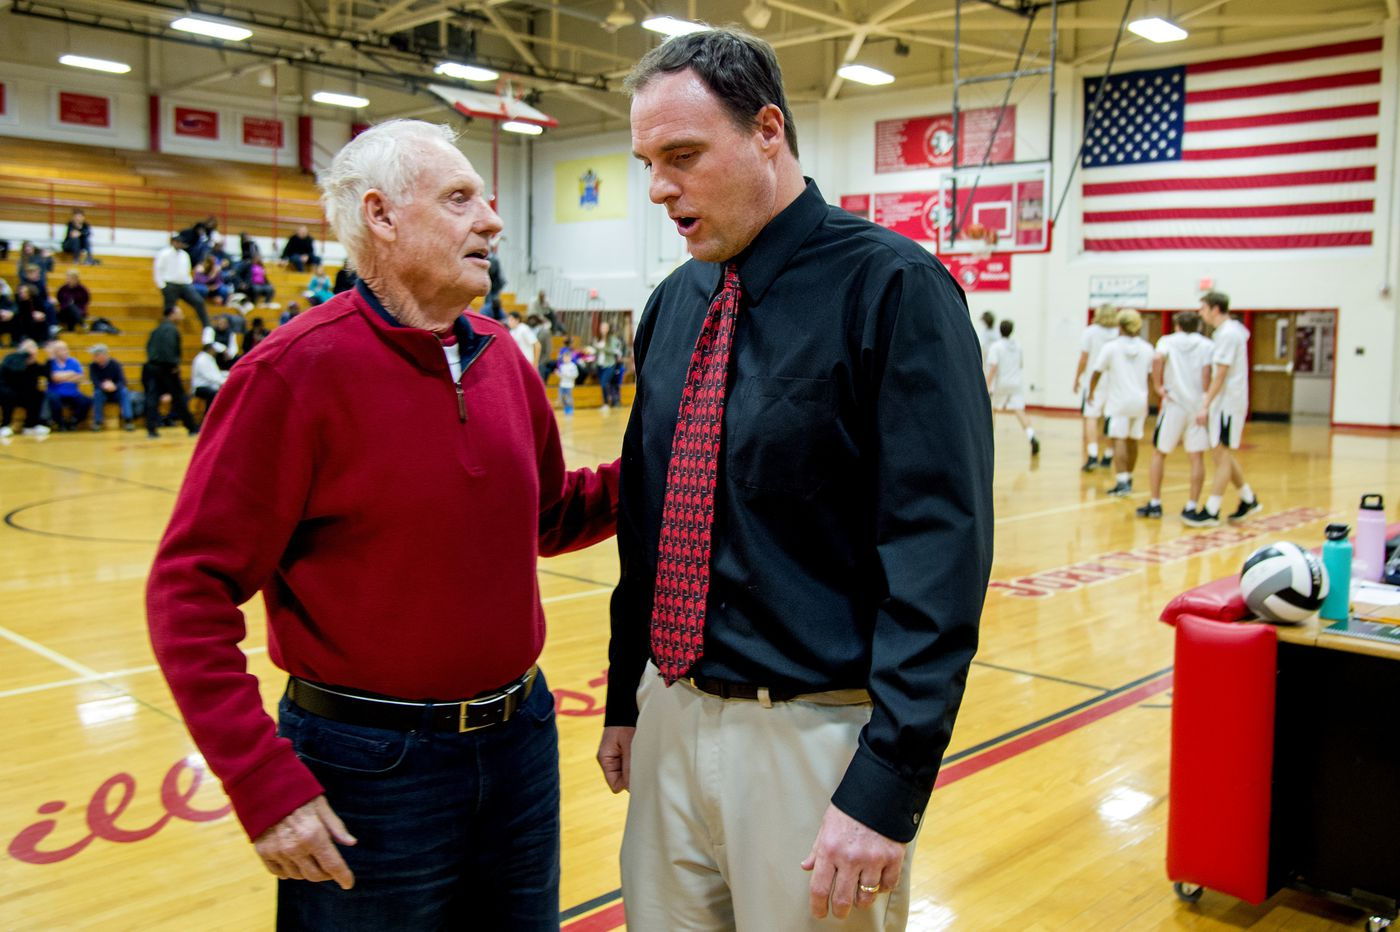 Like father, like son: Winning basketball games is family affair for Wiedemans of Haddonfield